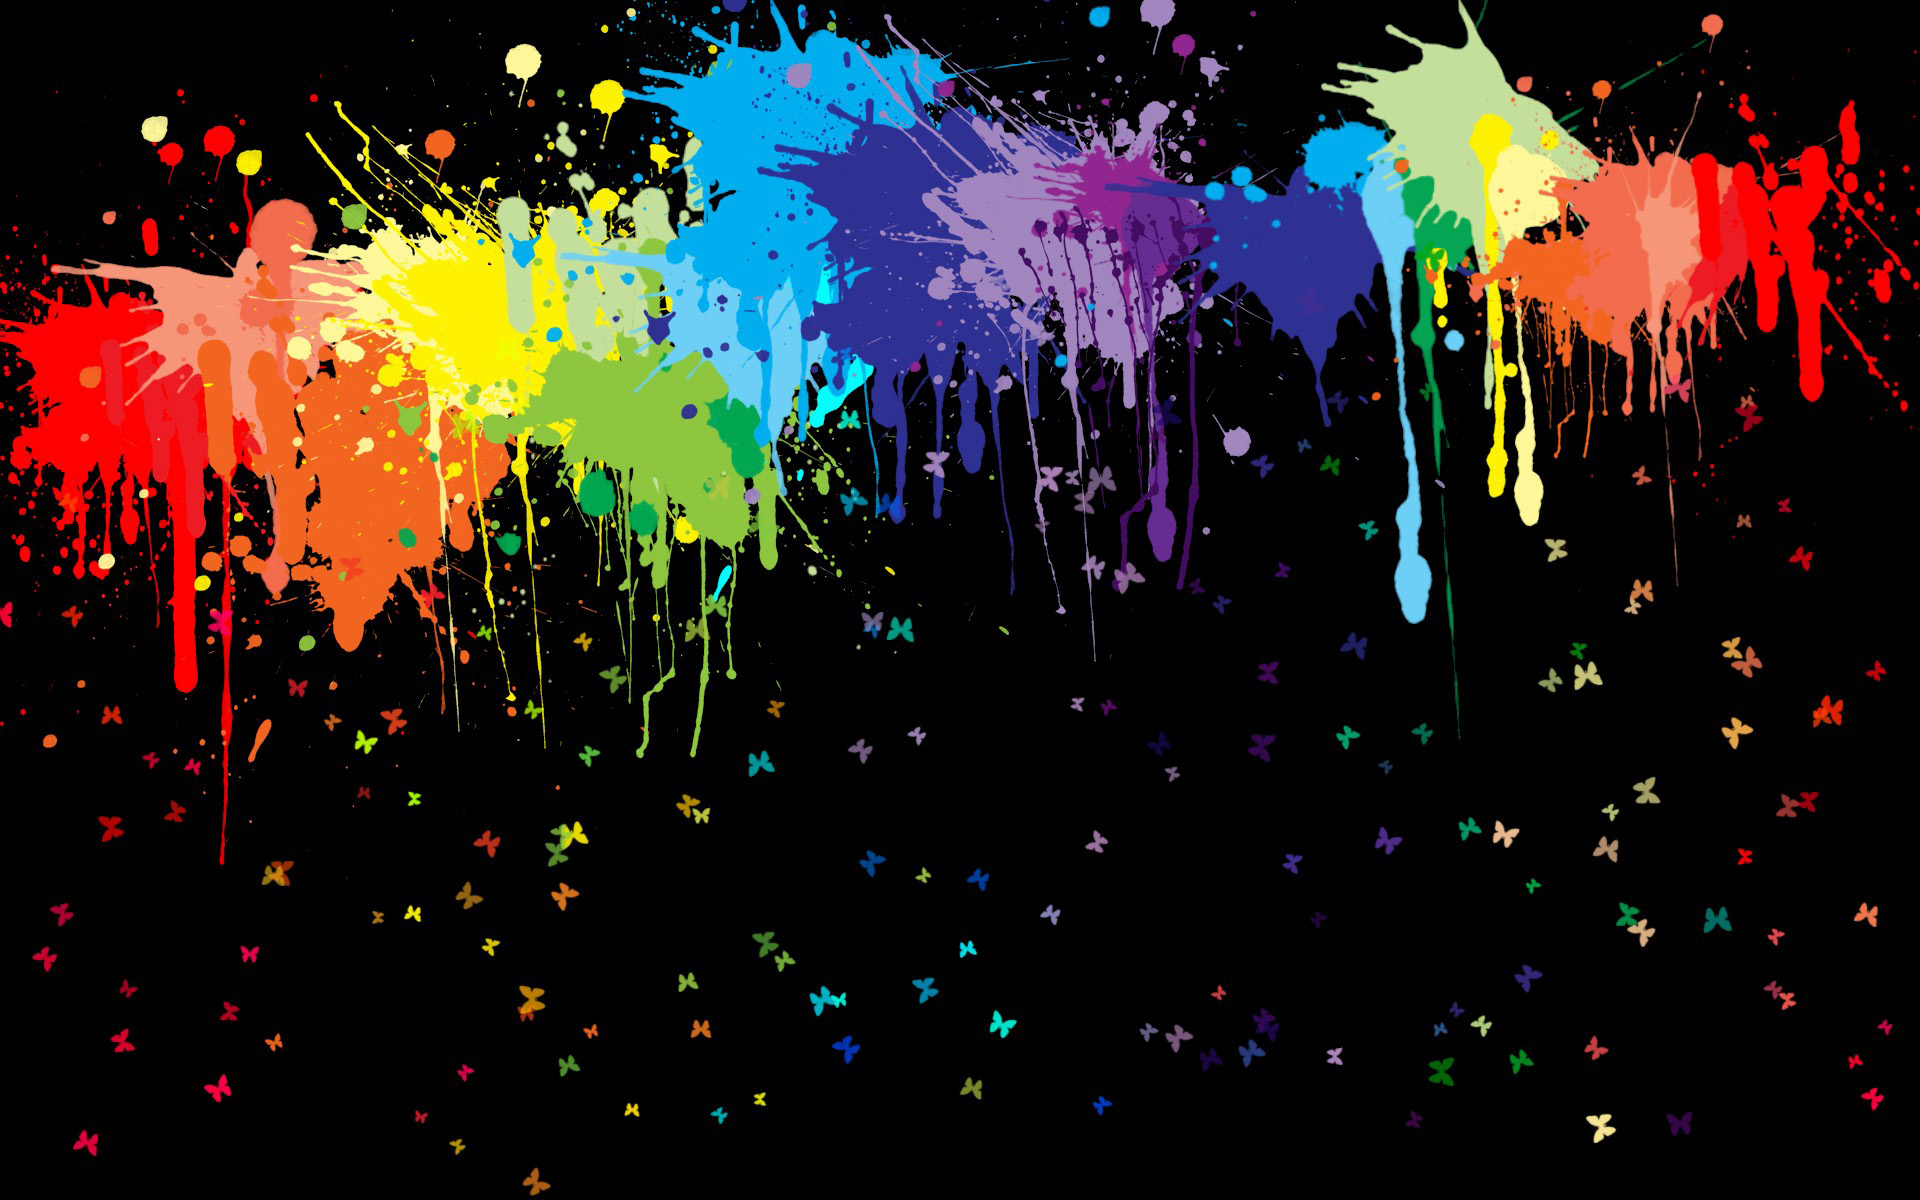 Abstract Photos Background Hd 2 Thumb